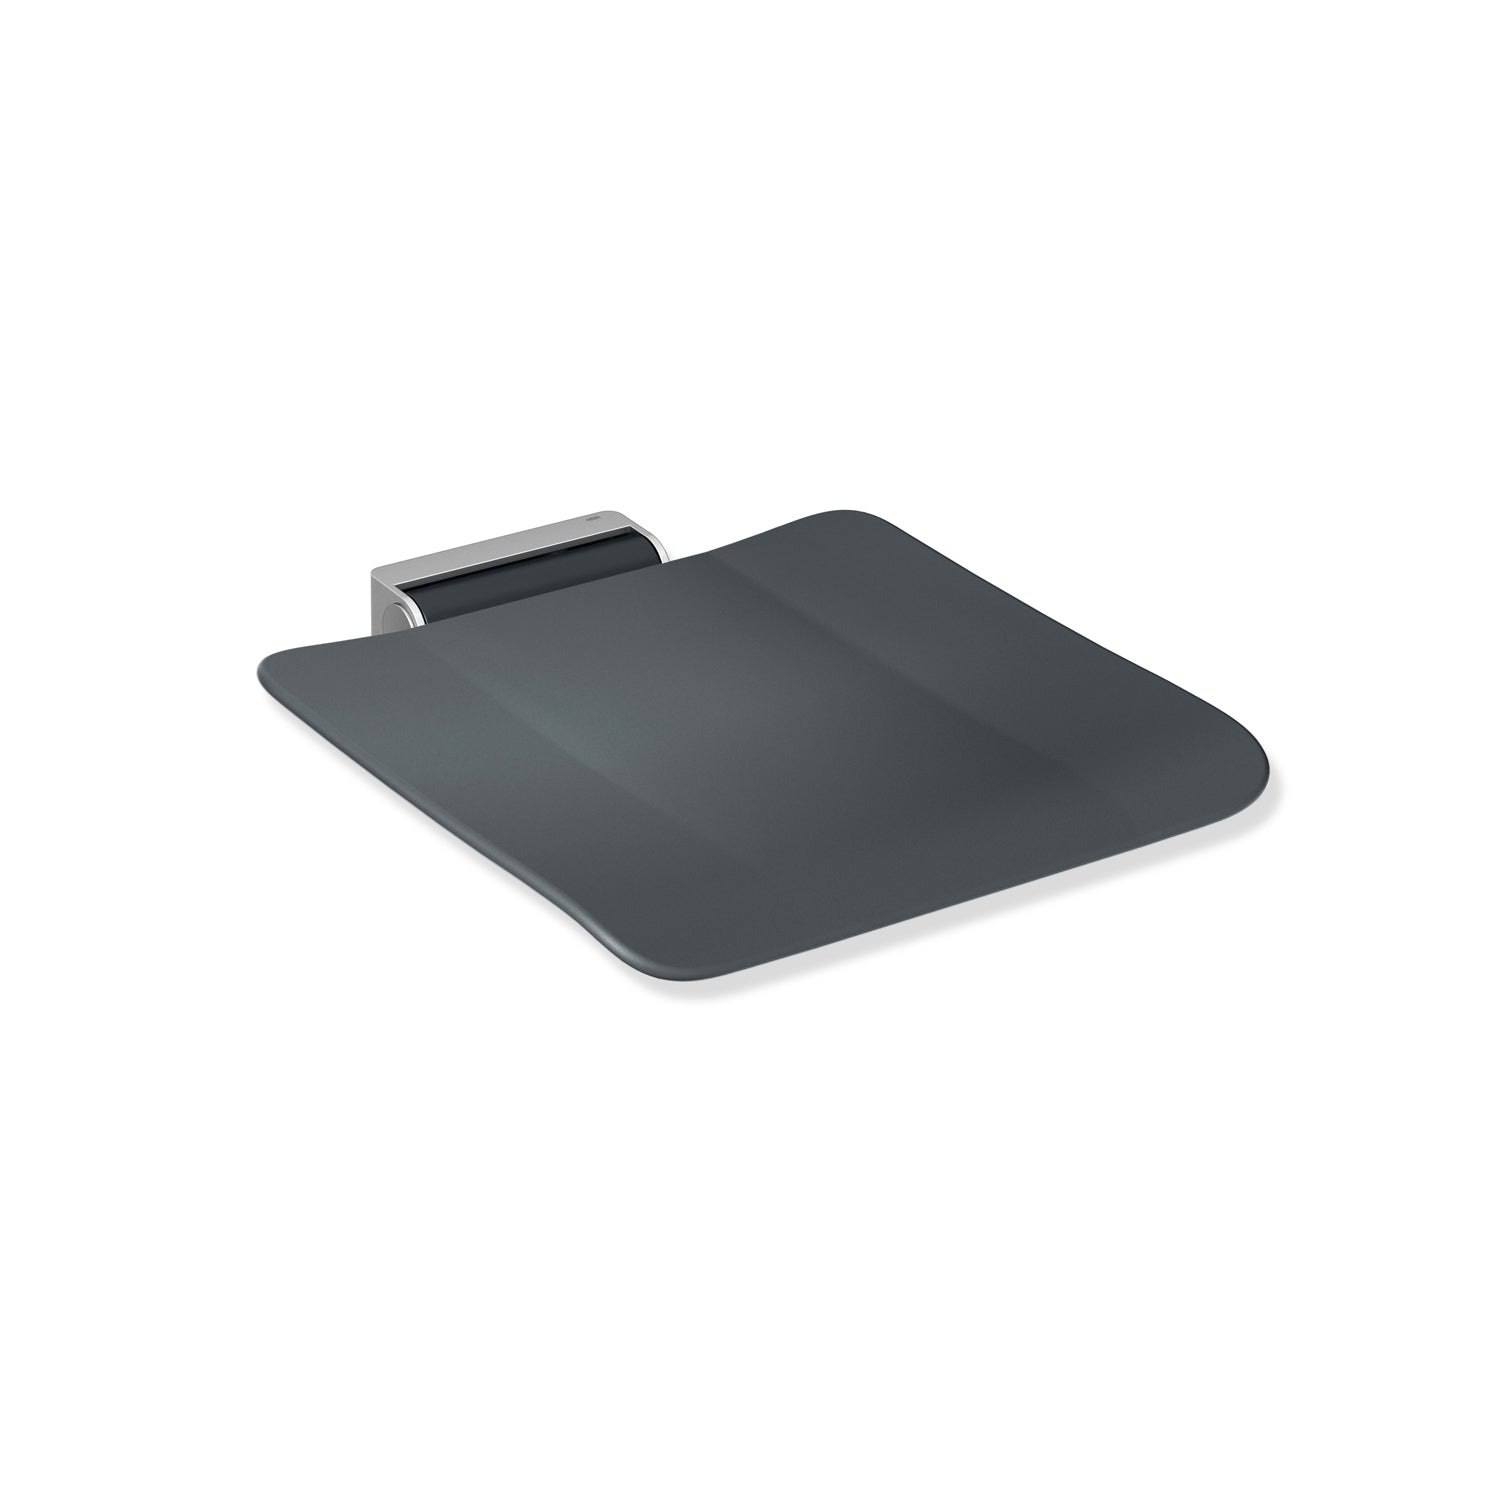 Freestyle Removable Shower Seat with an anthracite grey seat and satin steel bracket on a white background